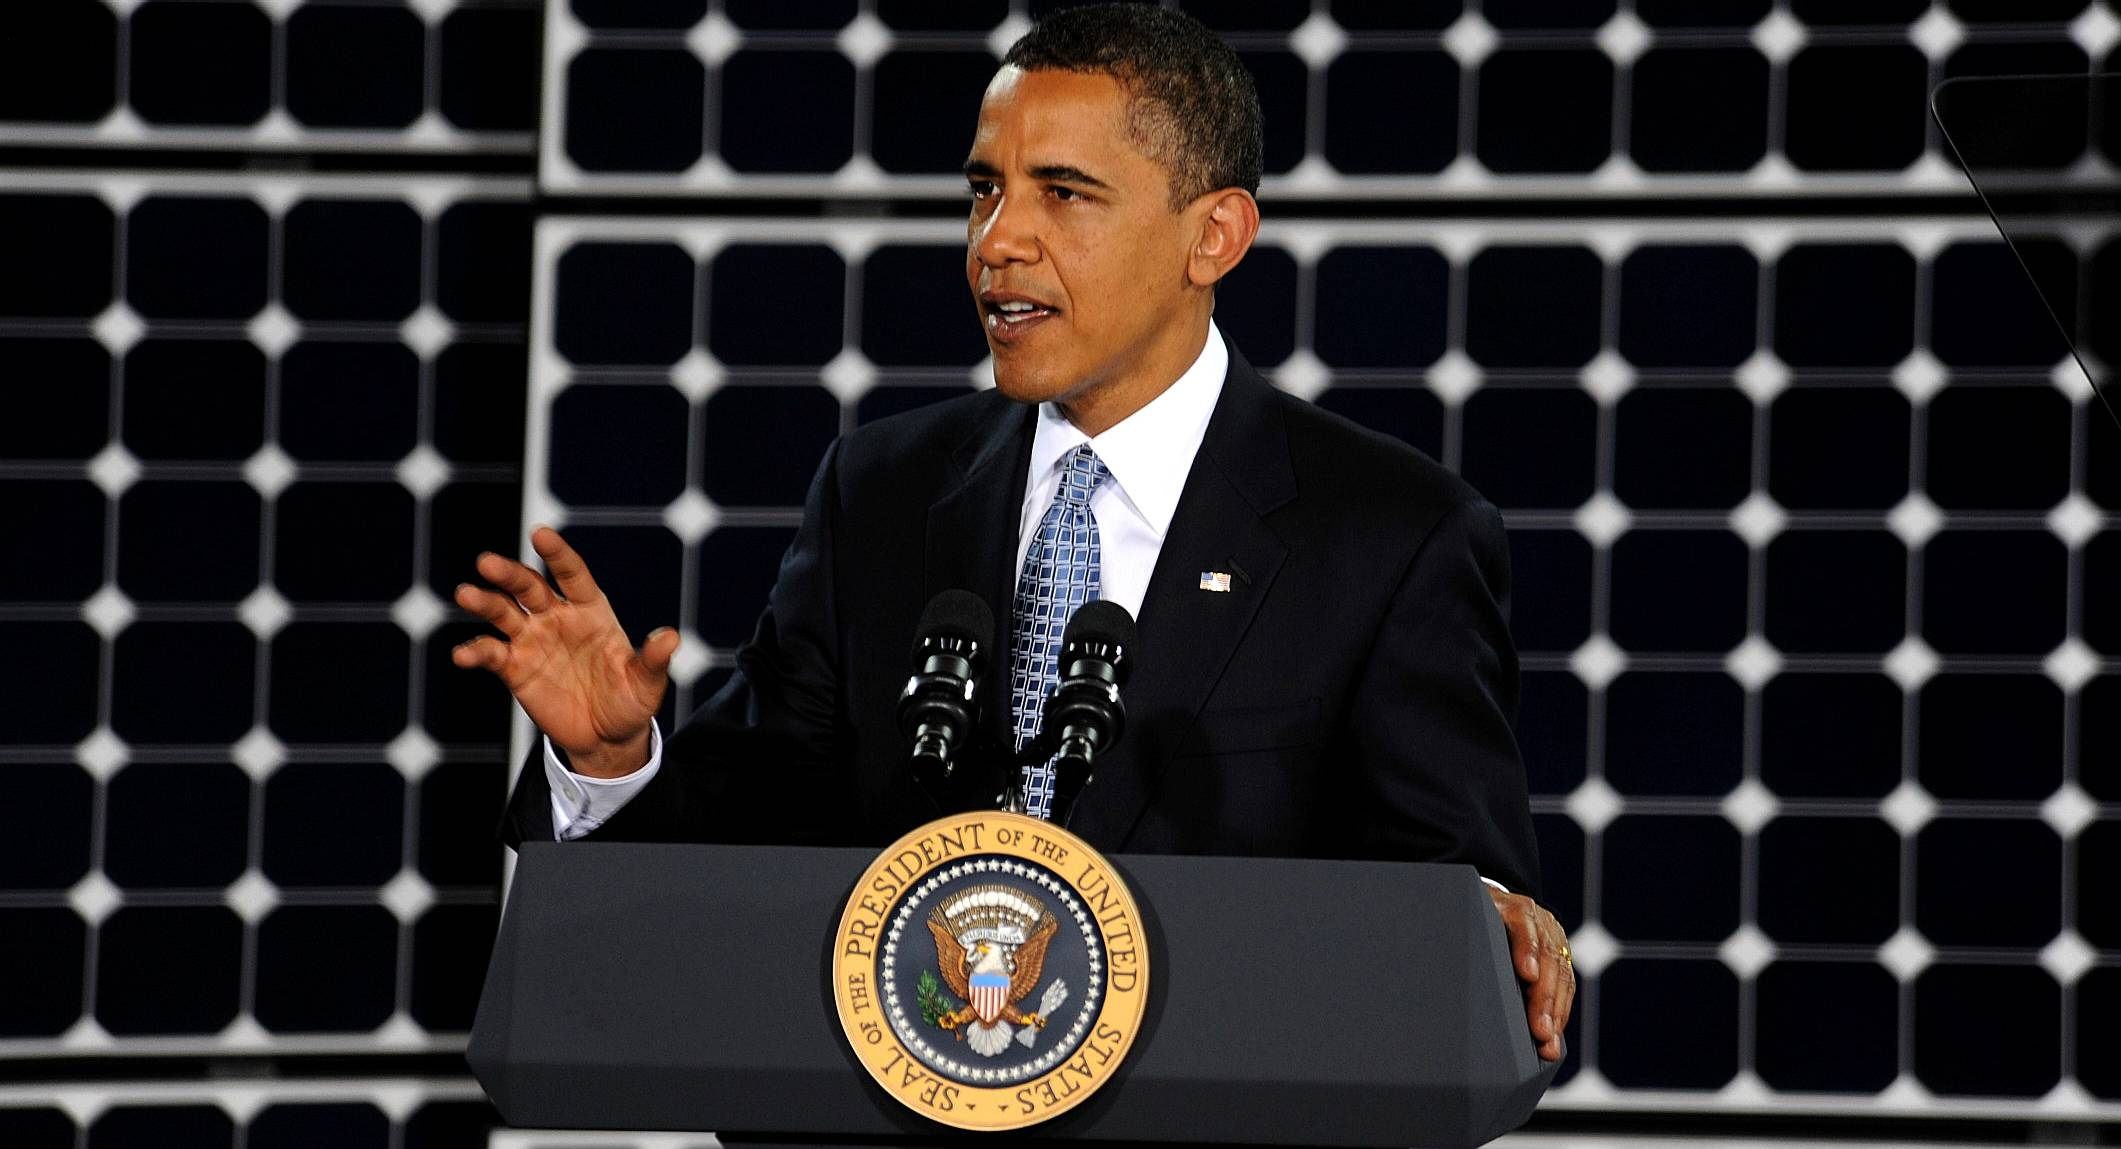 Barack Obama and solar panels at the Nellis air force base in Nevada